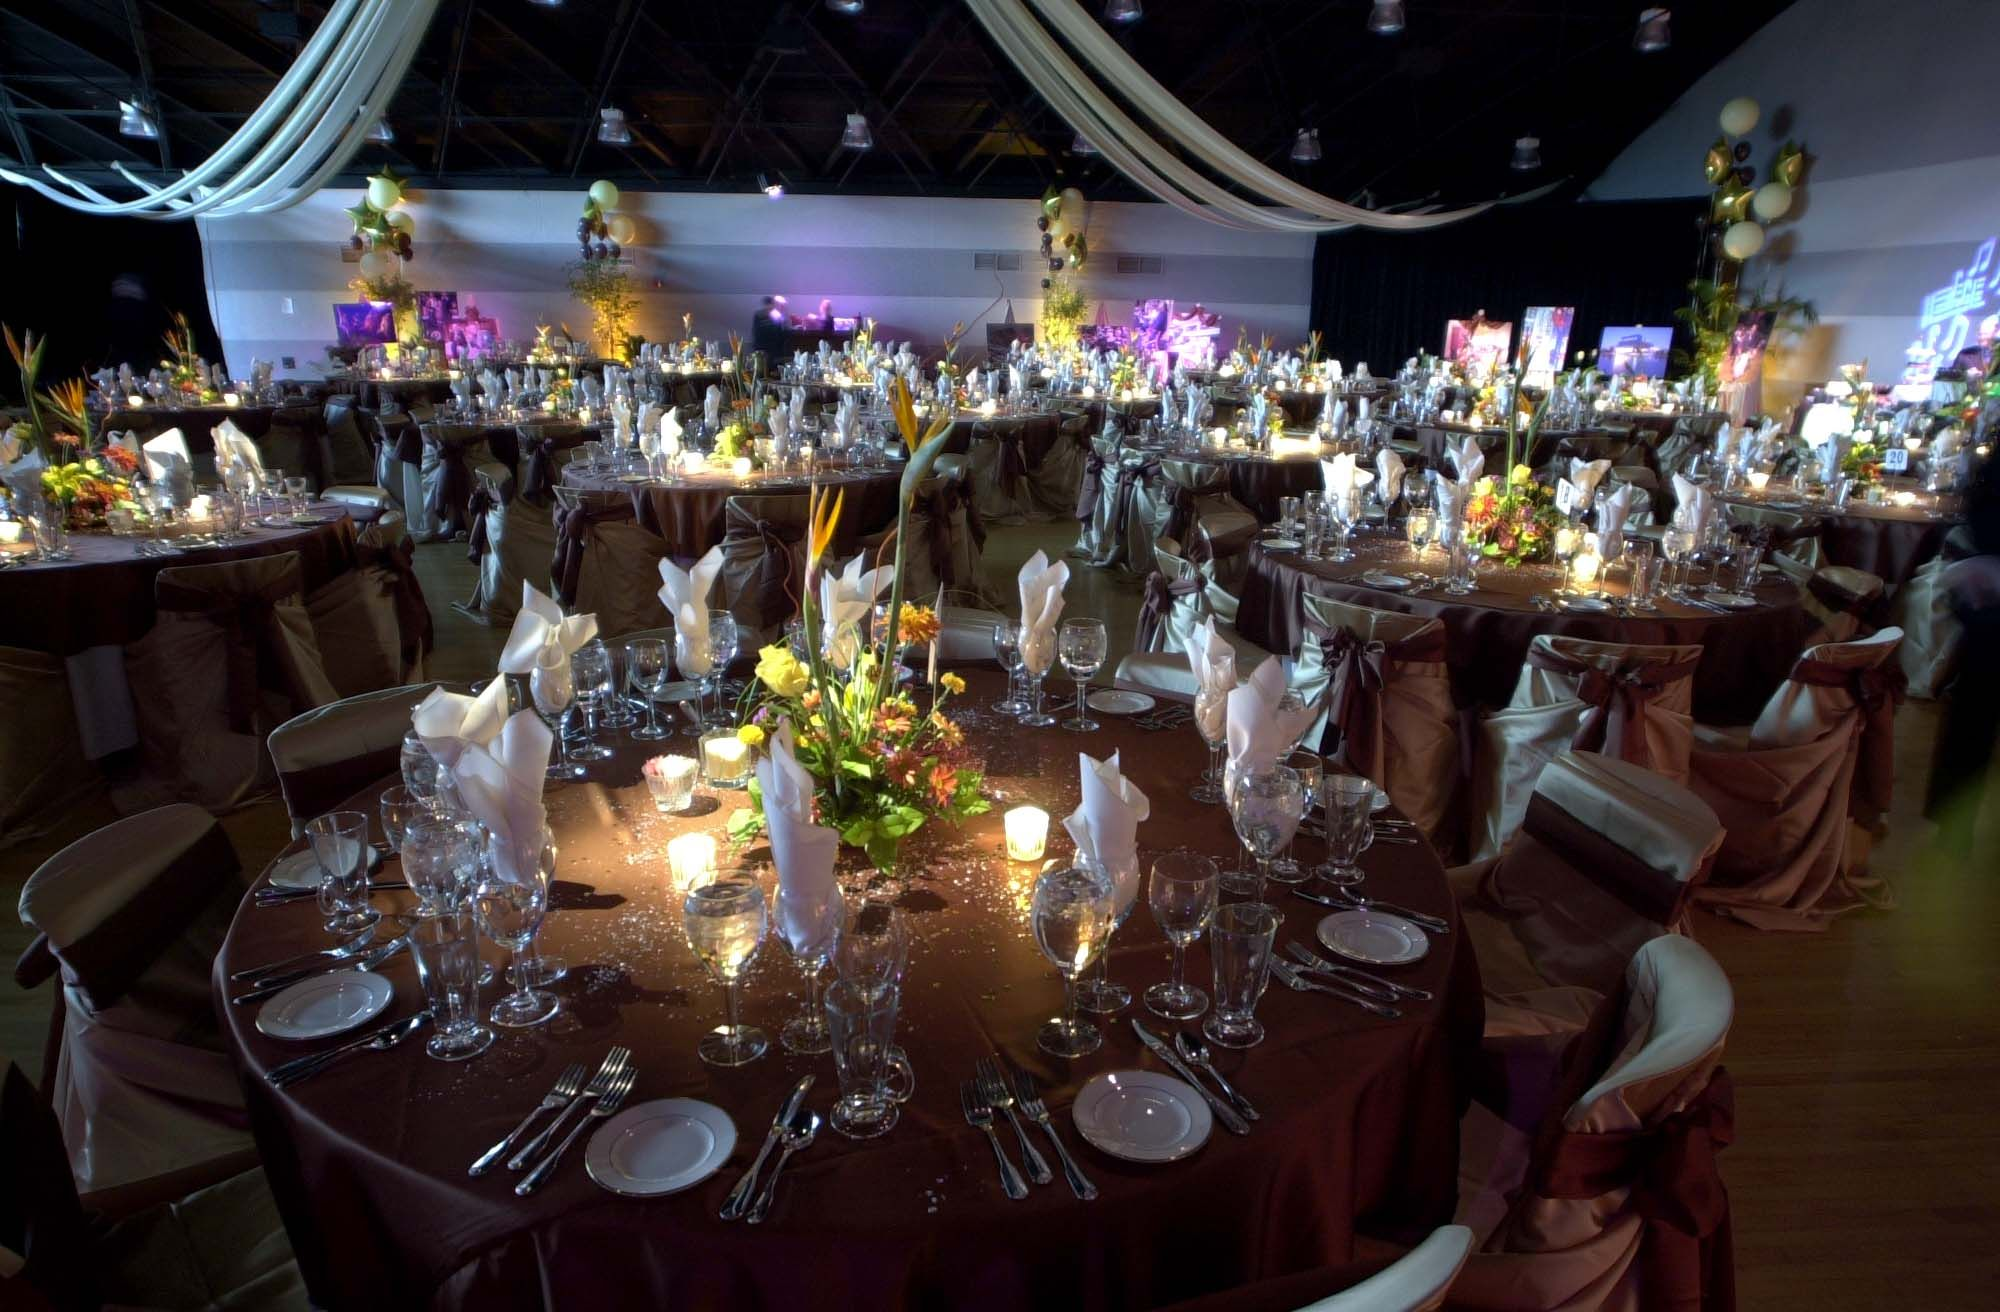 Wedding table set-up idea from wedding at the Hubbard Ballroom, Ford Community & Performing Arts Center, Dearborn, MI!